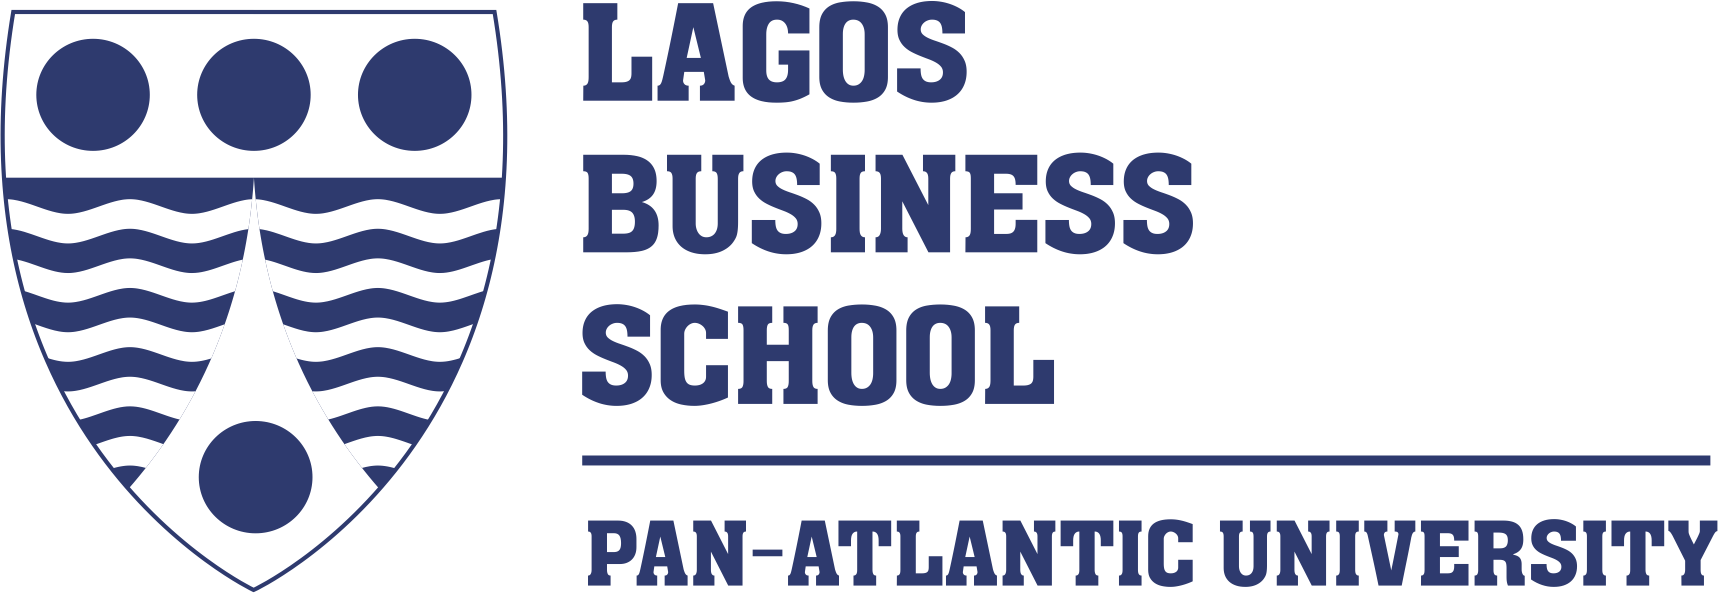 Lagos Business School. This opens a new window.